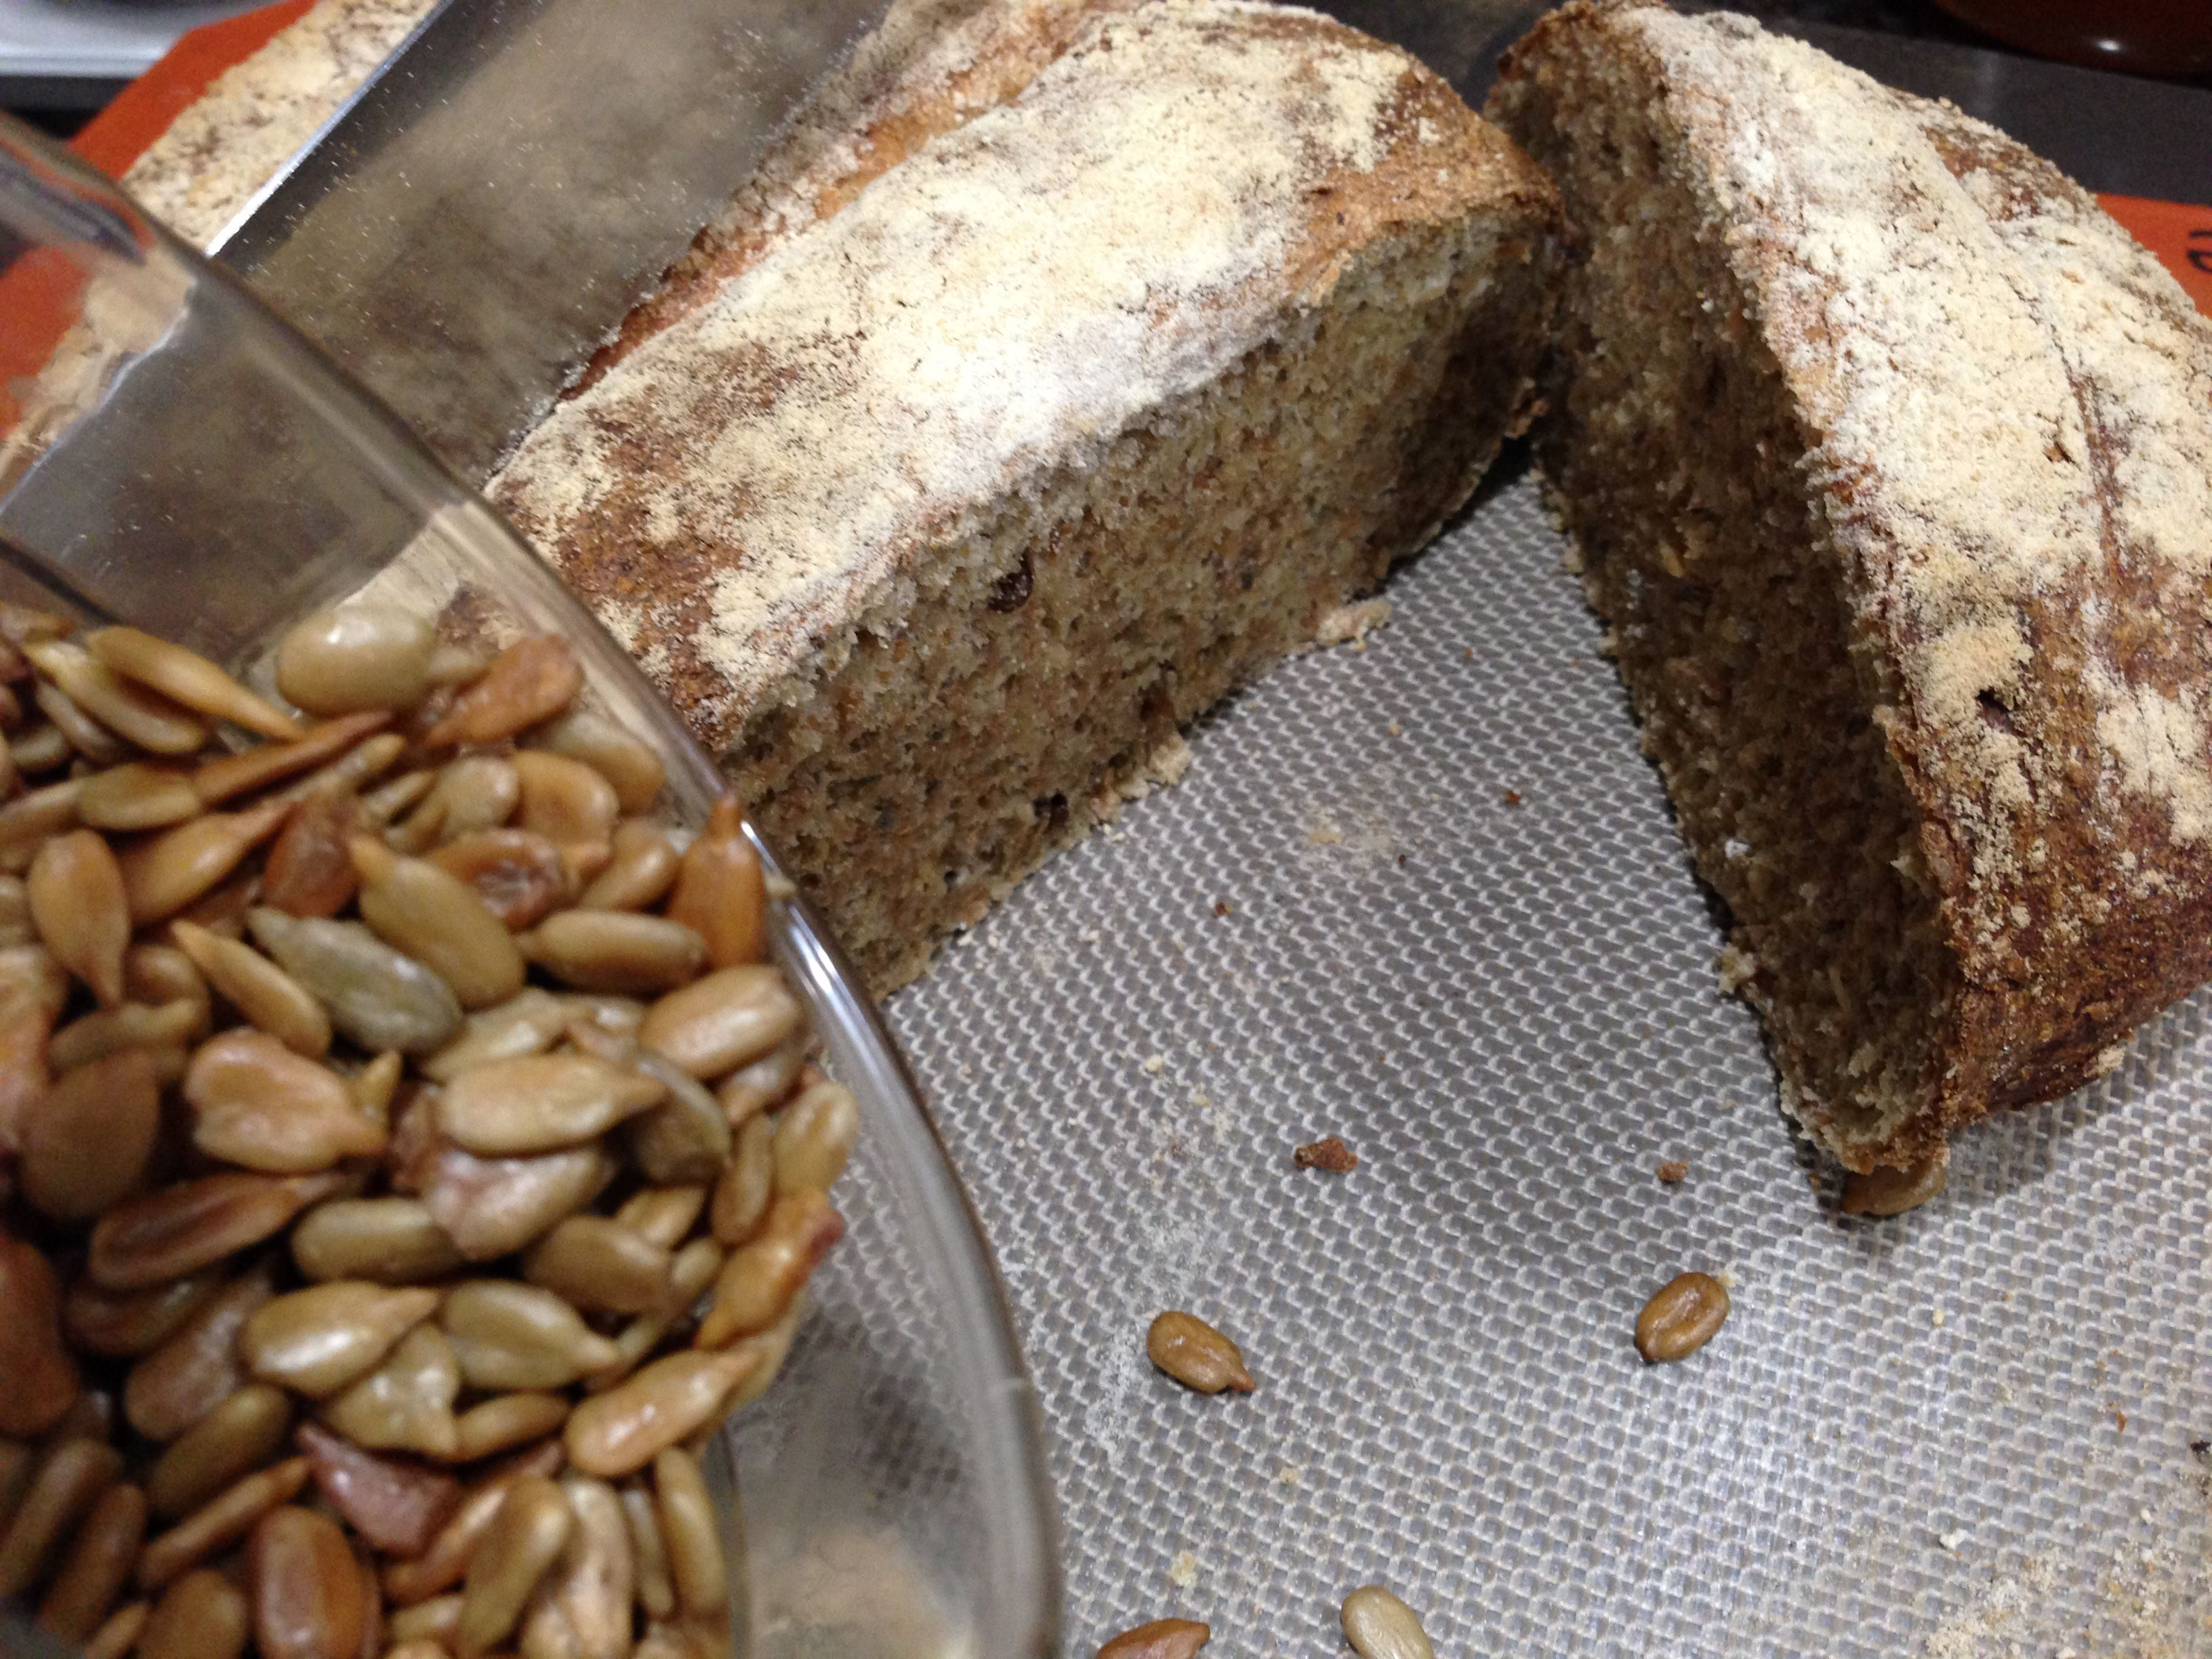 Whole Grain Bread with Seeds - Easy and healthy recipe from http://minimalistbaker.com/easy-homemade-wheat-bread/. Used chia seeds instead of flax seeds.